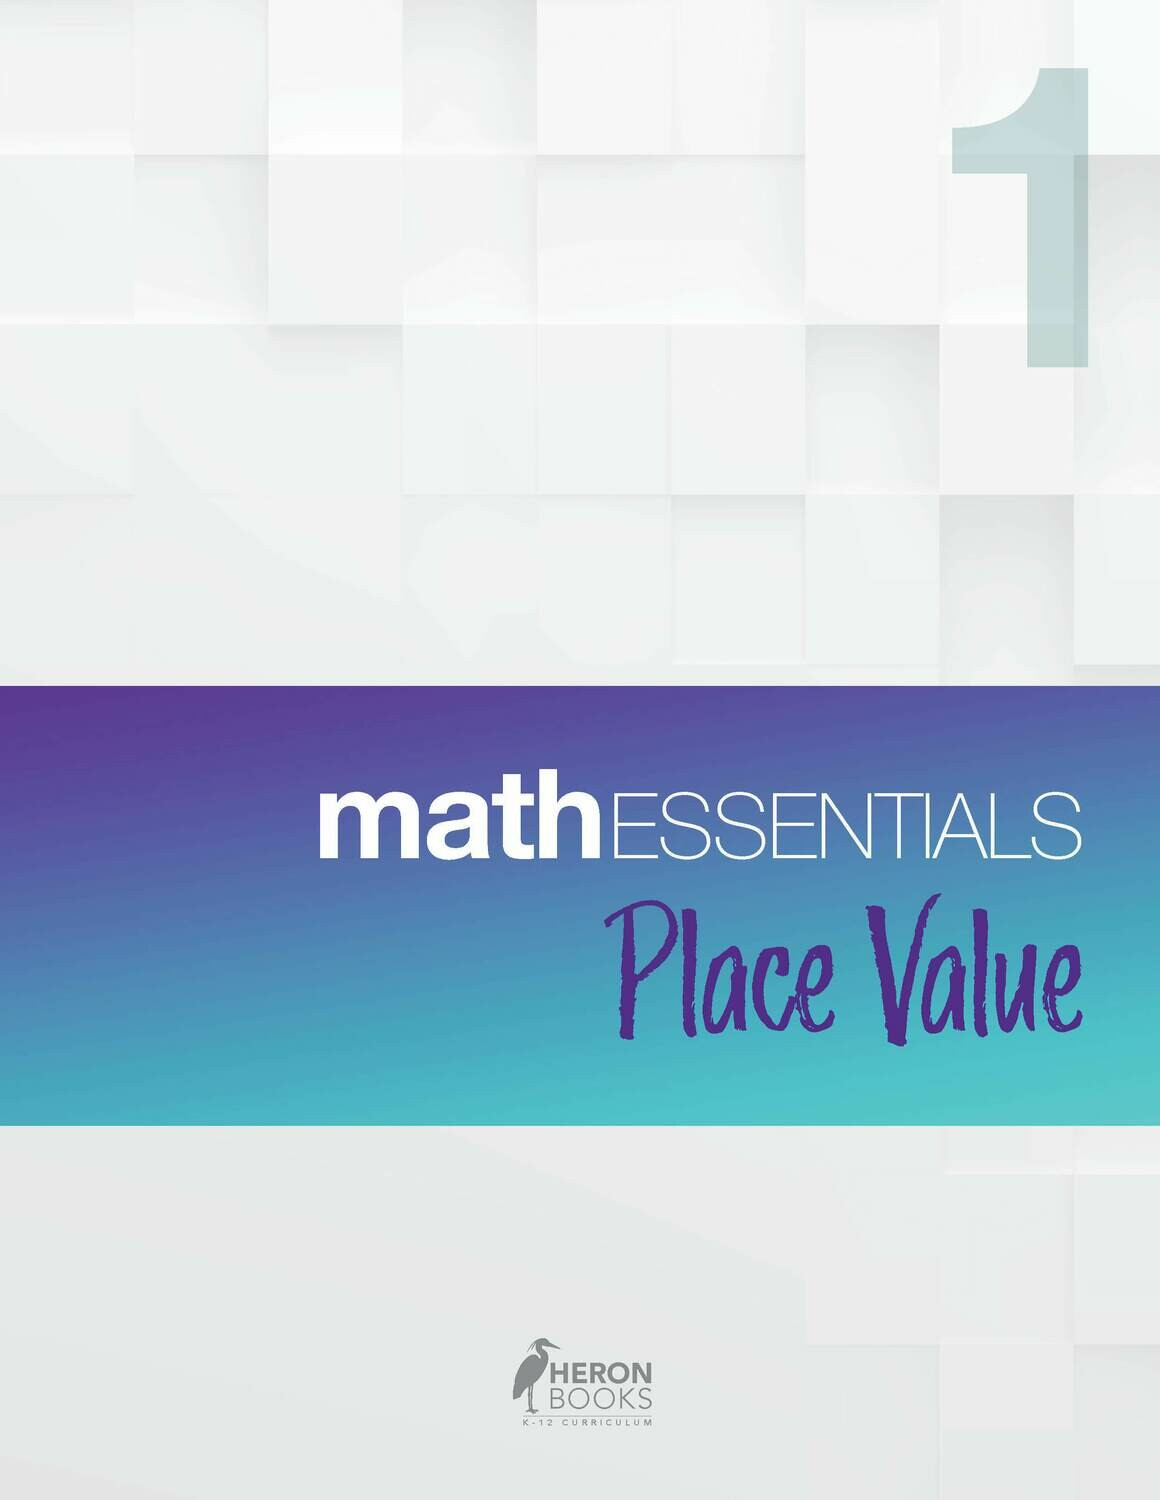 Math Essentials 1 – Place Value